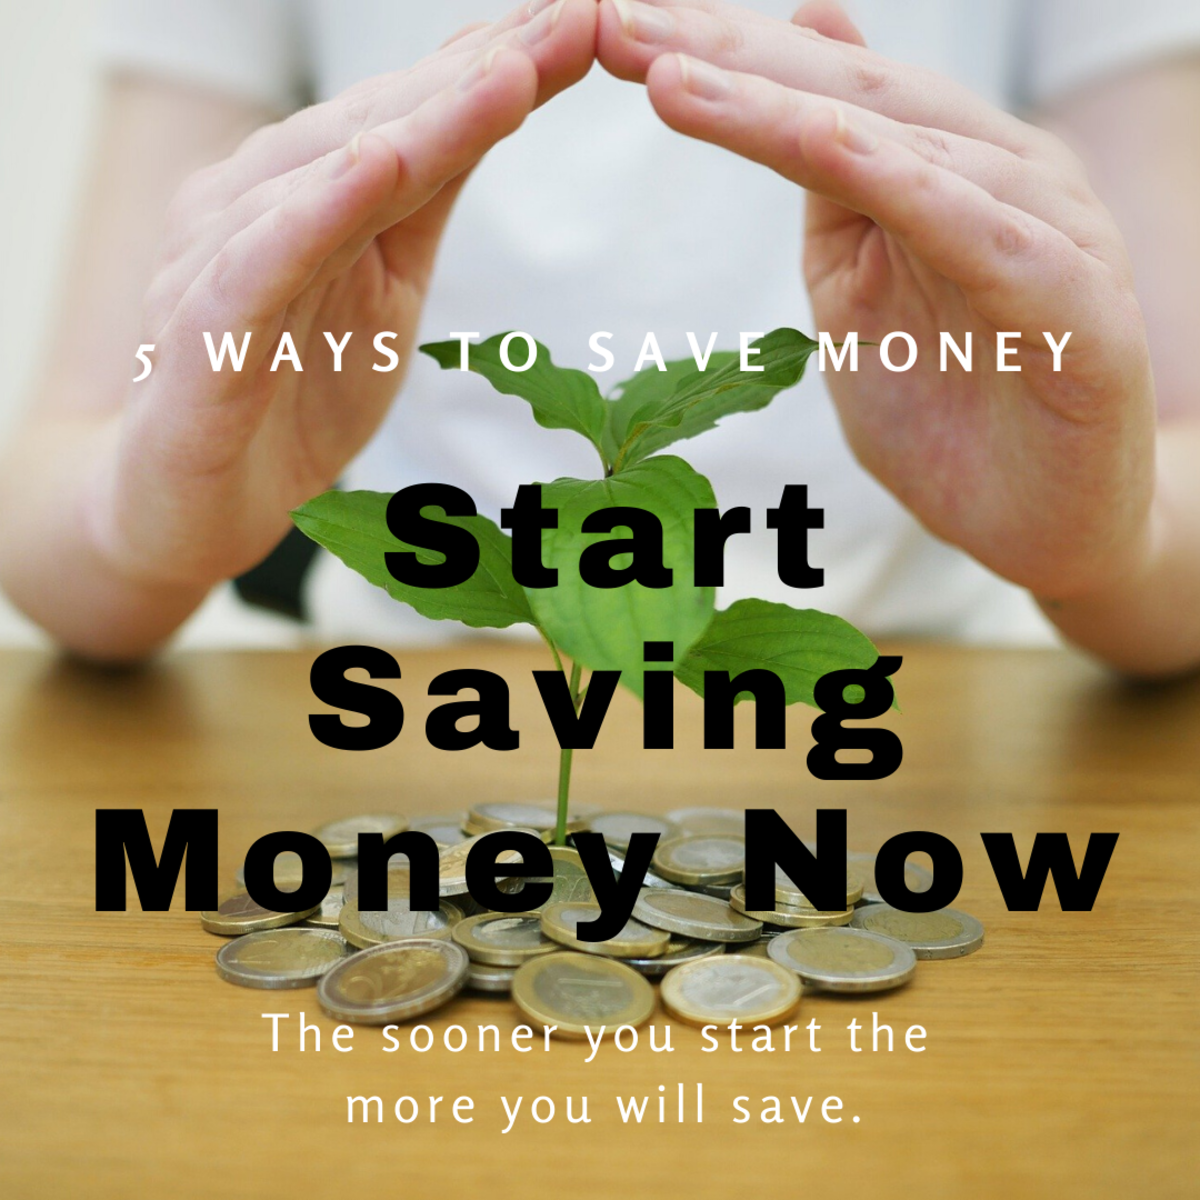 Start saving now and see how much money you can save for your future increase